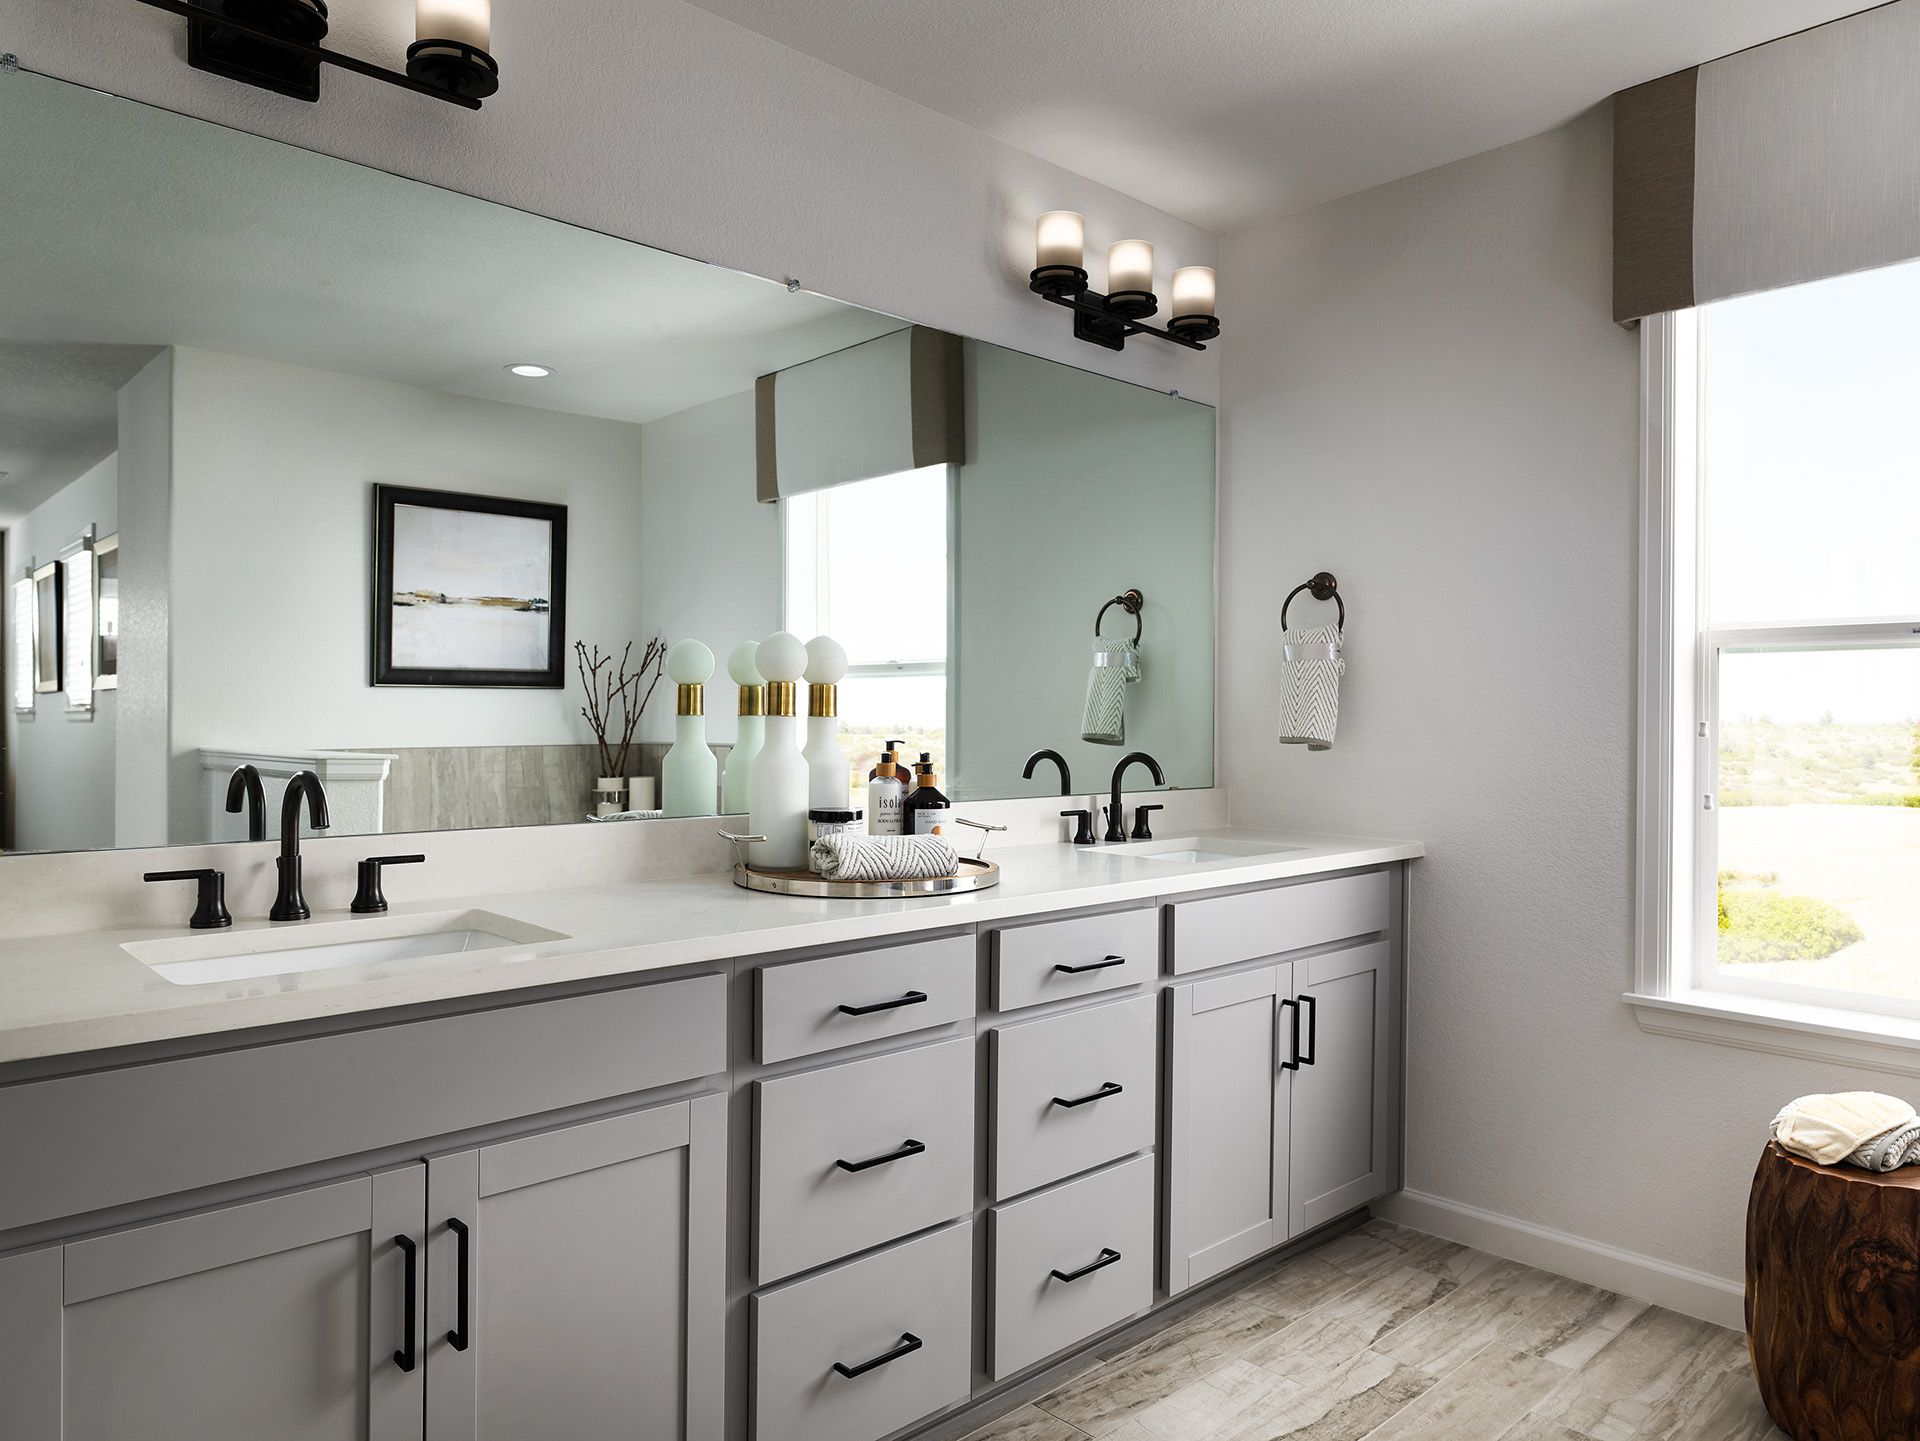 'The Reserve at Registry Ridge' by Lokal Homes in Fort Collins-Loveland